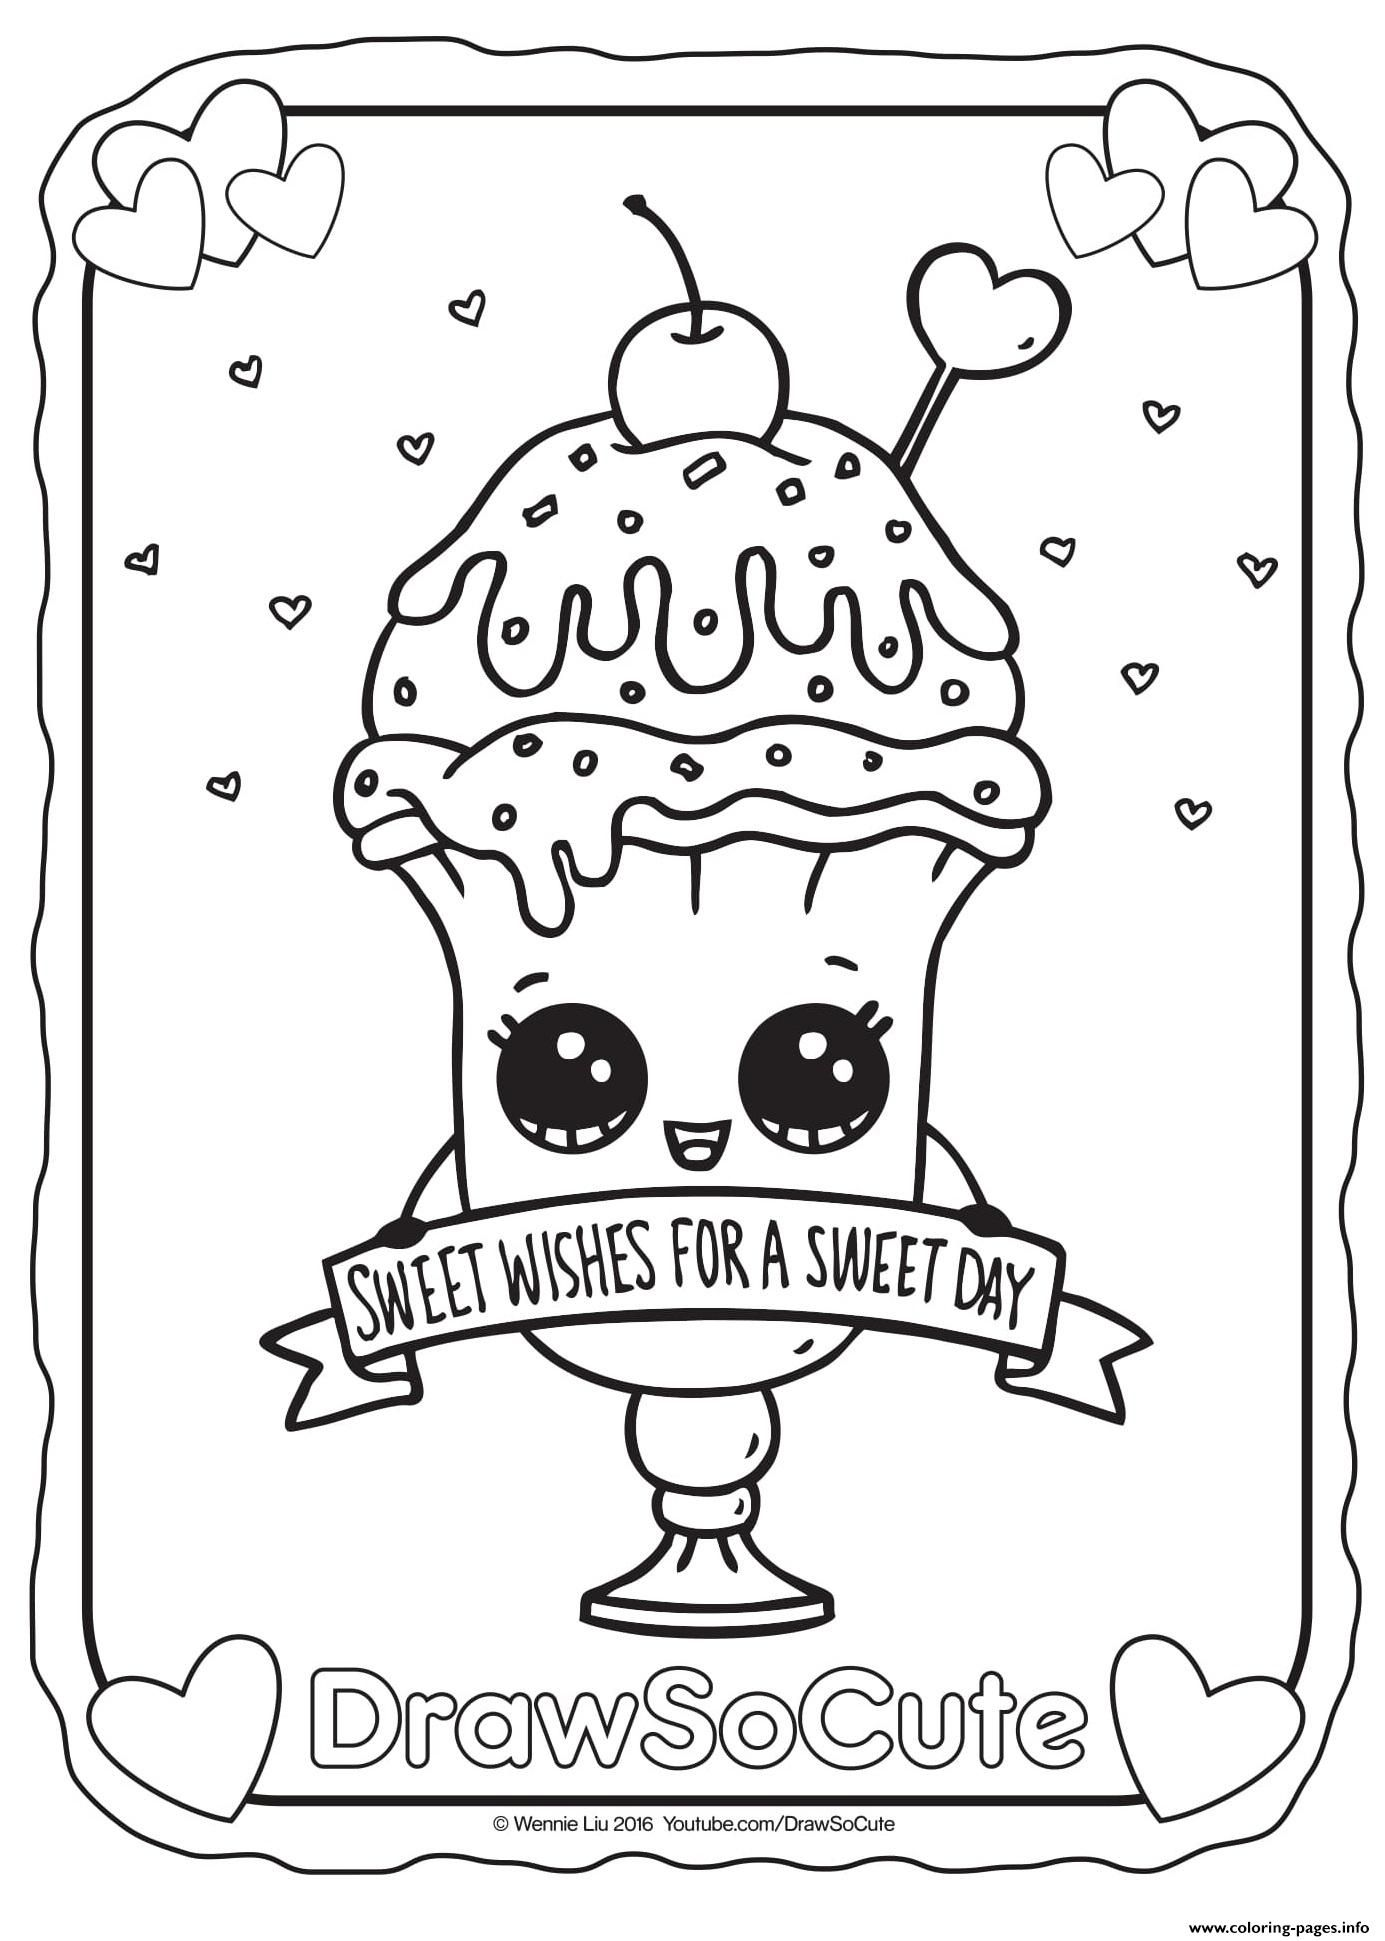 Draw So Cute Coloring Pages 4 D Sundae Coloring Page Image Clipart Grig3 Unicorn Coloring Pages Monkey Coloring Pages Cute Coloring Pages